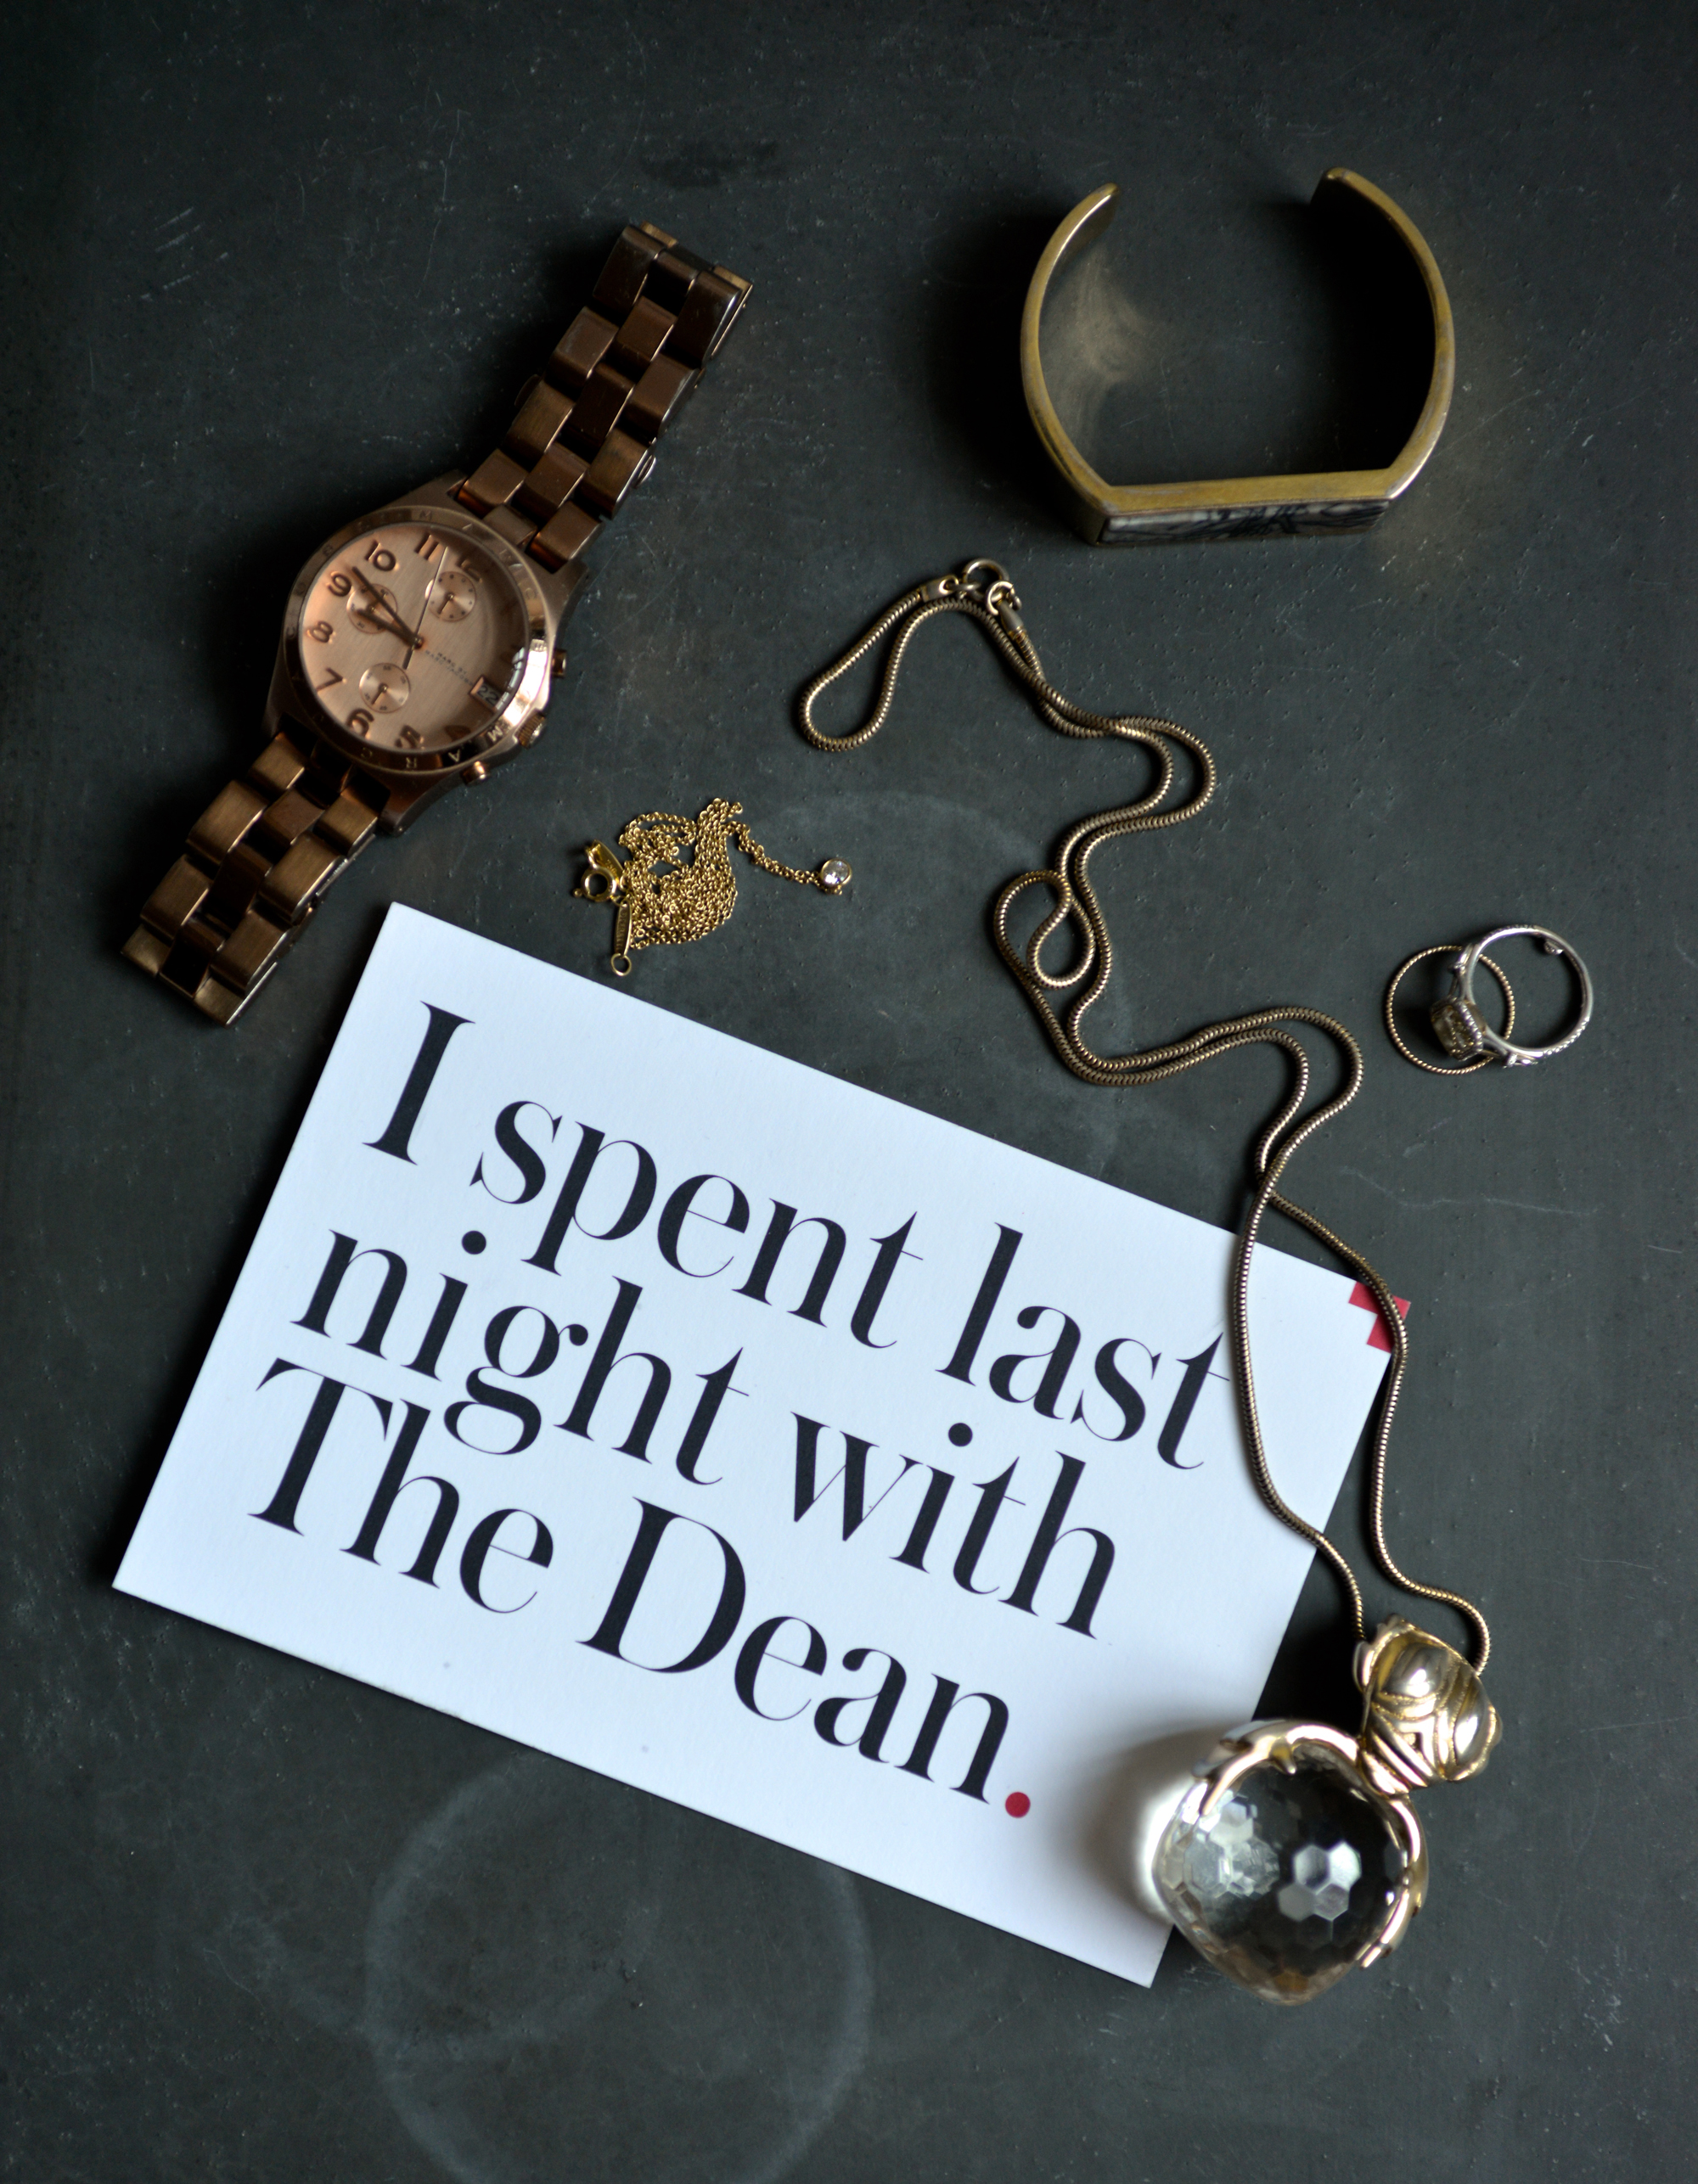 The Dean Hotel - On the Bedside Table - Photograph by Lauren L Caron